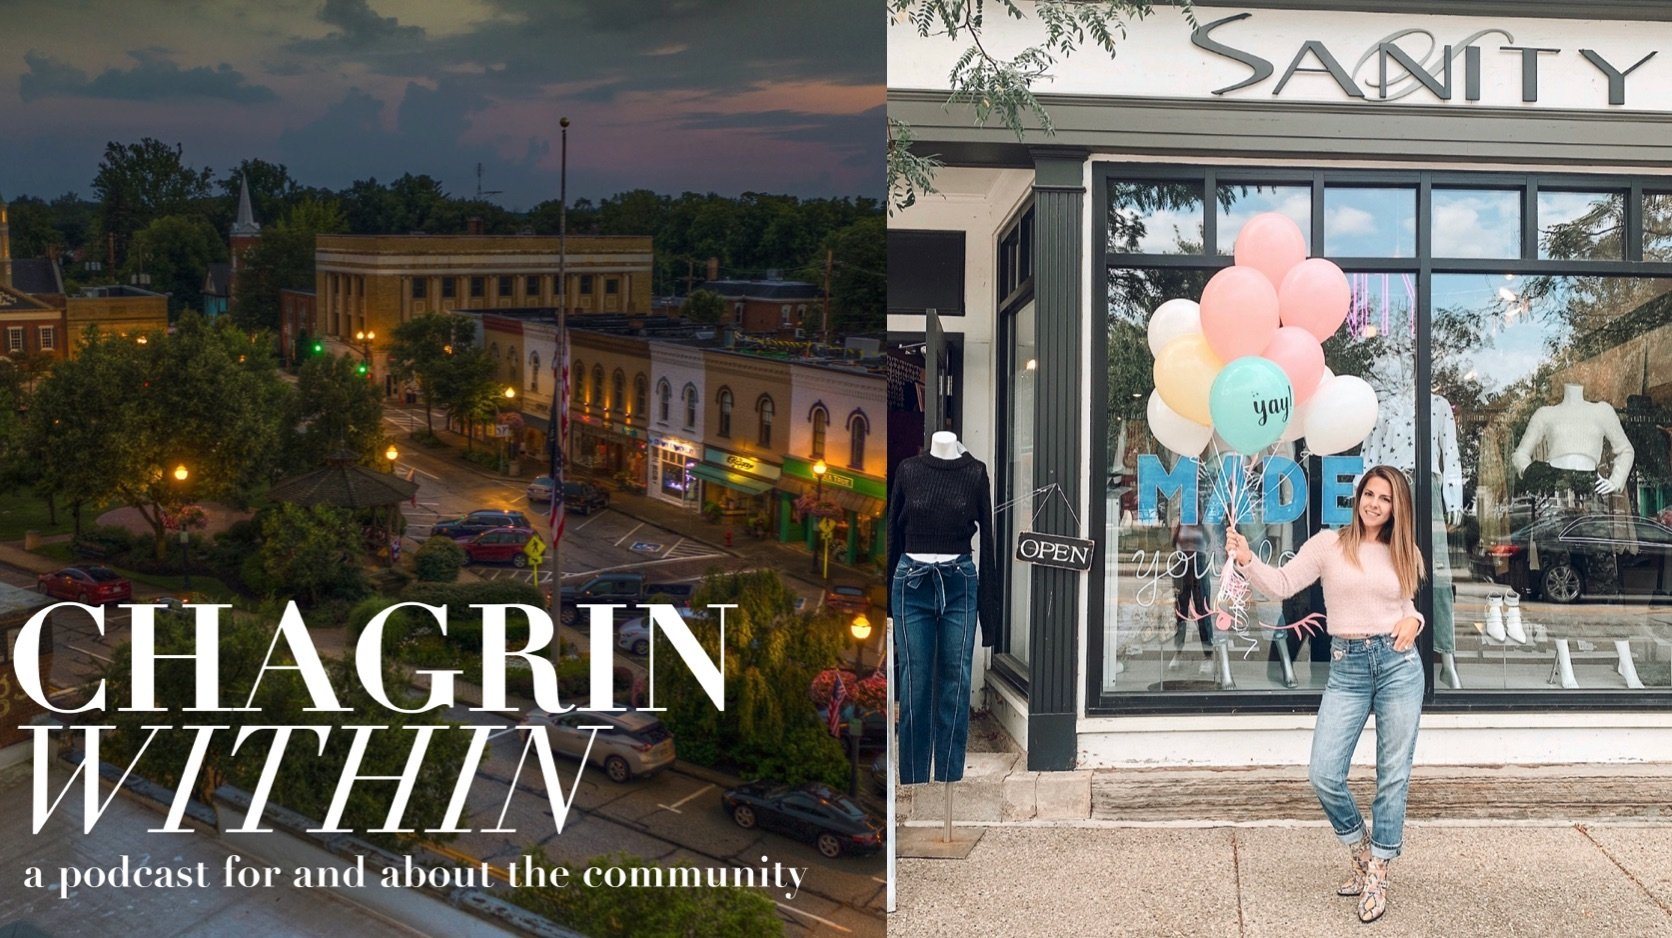 Isabel Pritchett from SANITY on Chagrin Within Podcast - Chagrin Within Podcast is for and about the Chagrin Falls, Ohio Community